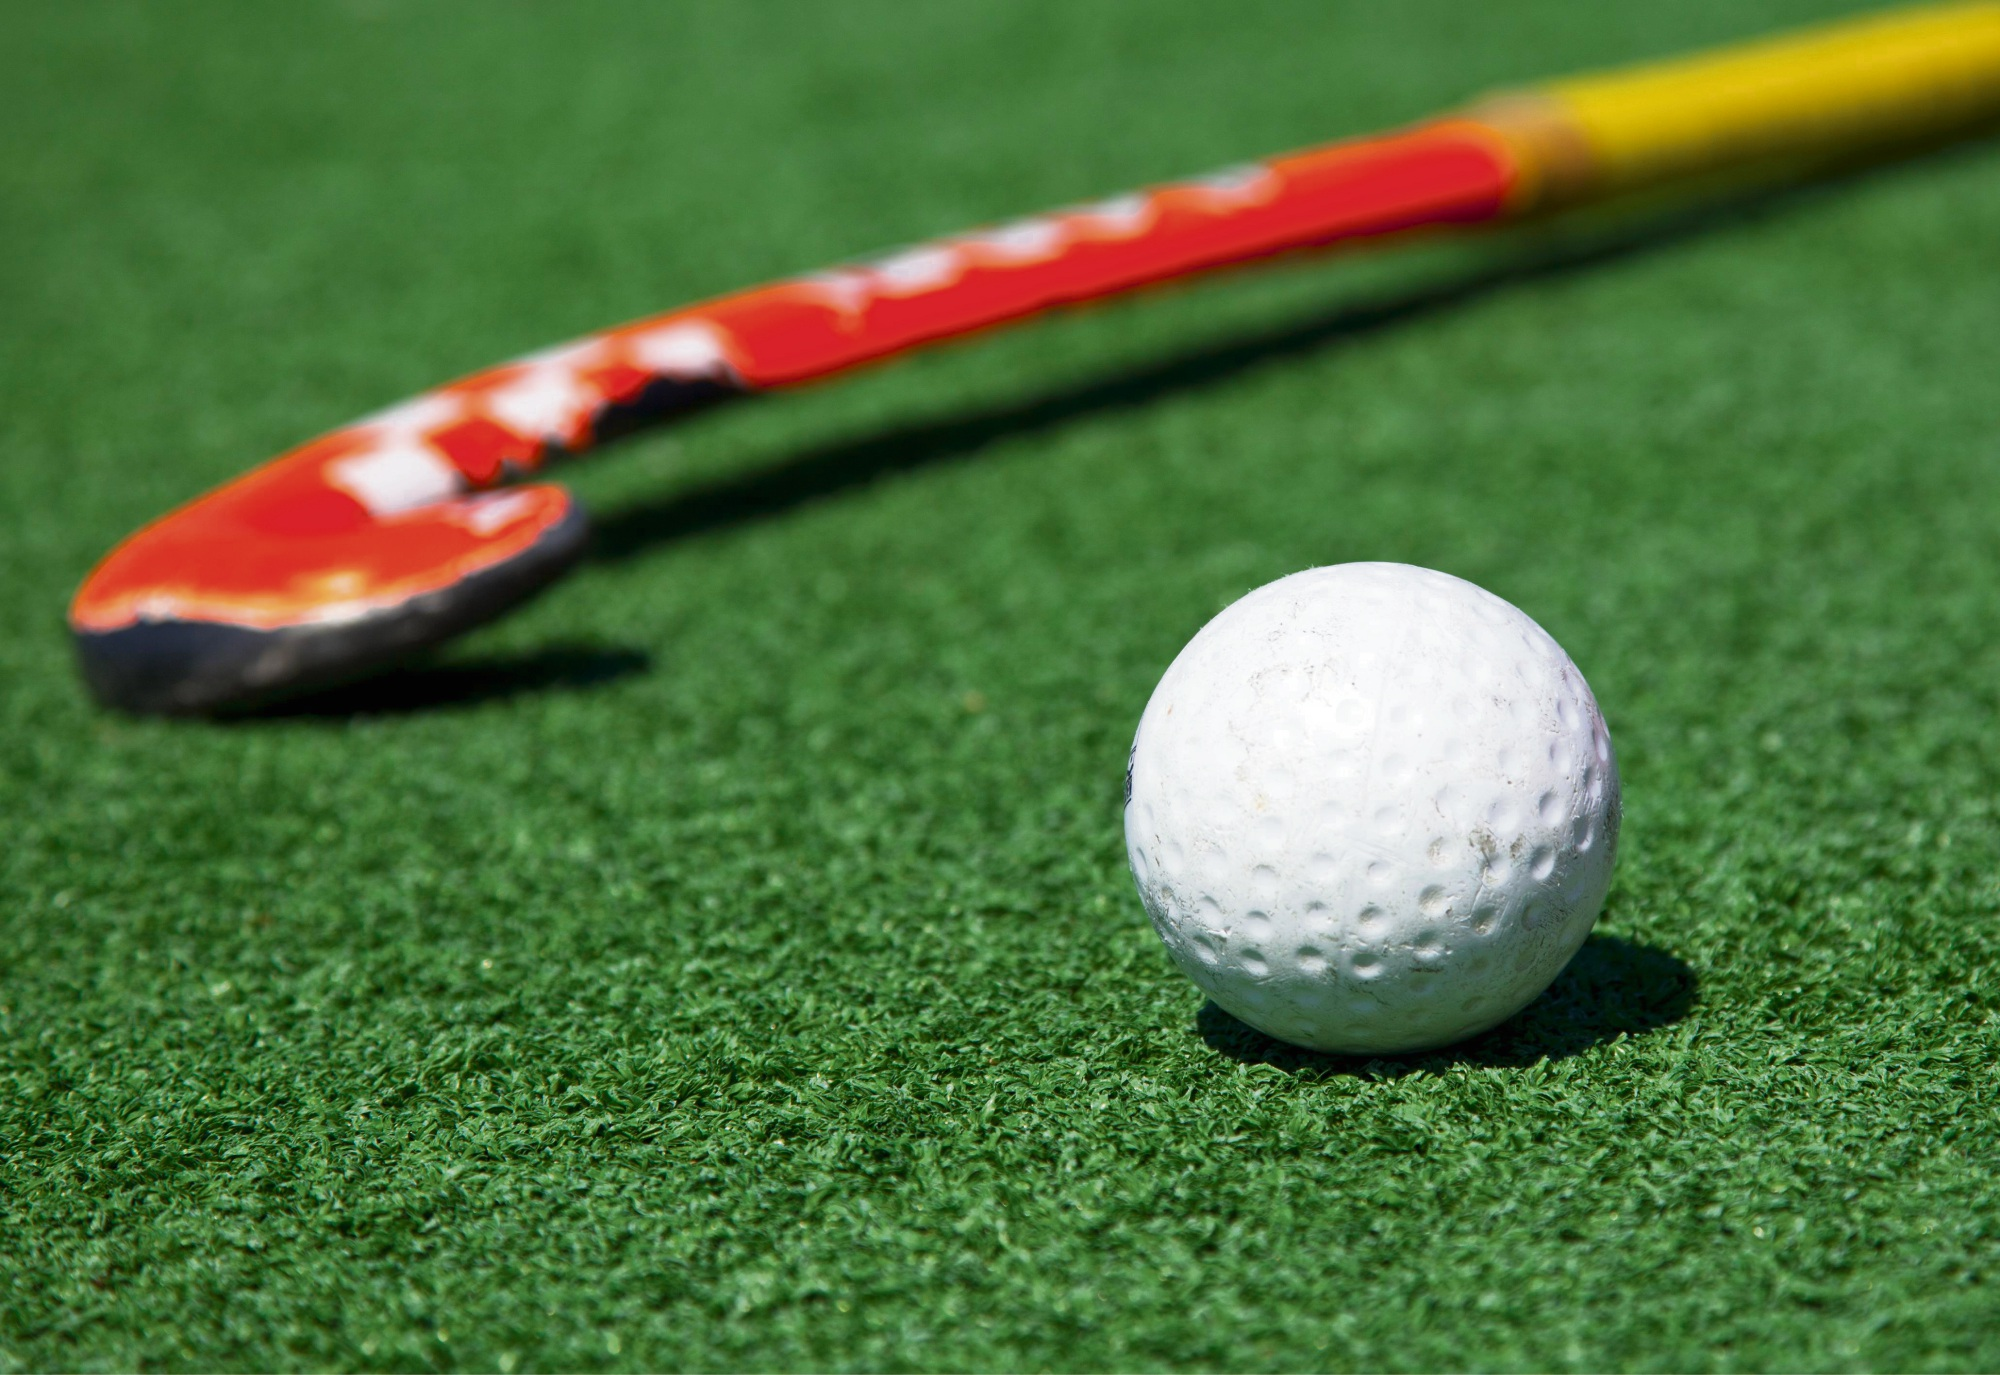 Western suburbs hockey players selected in WA Indoor State Team